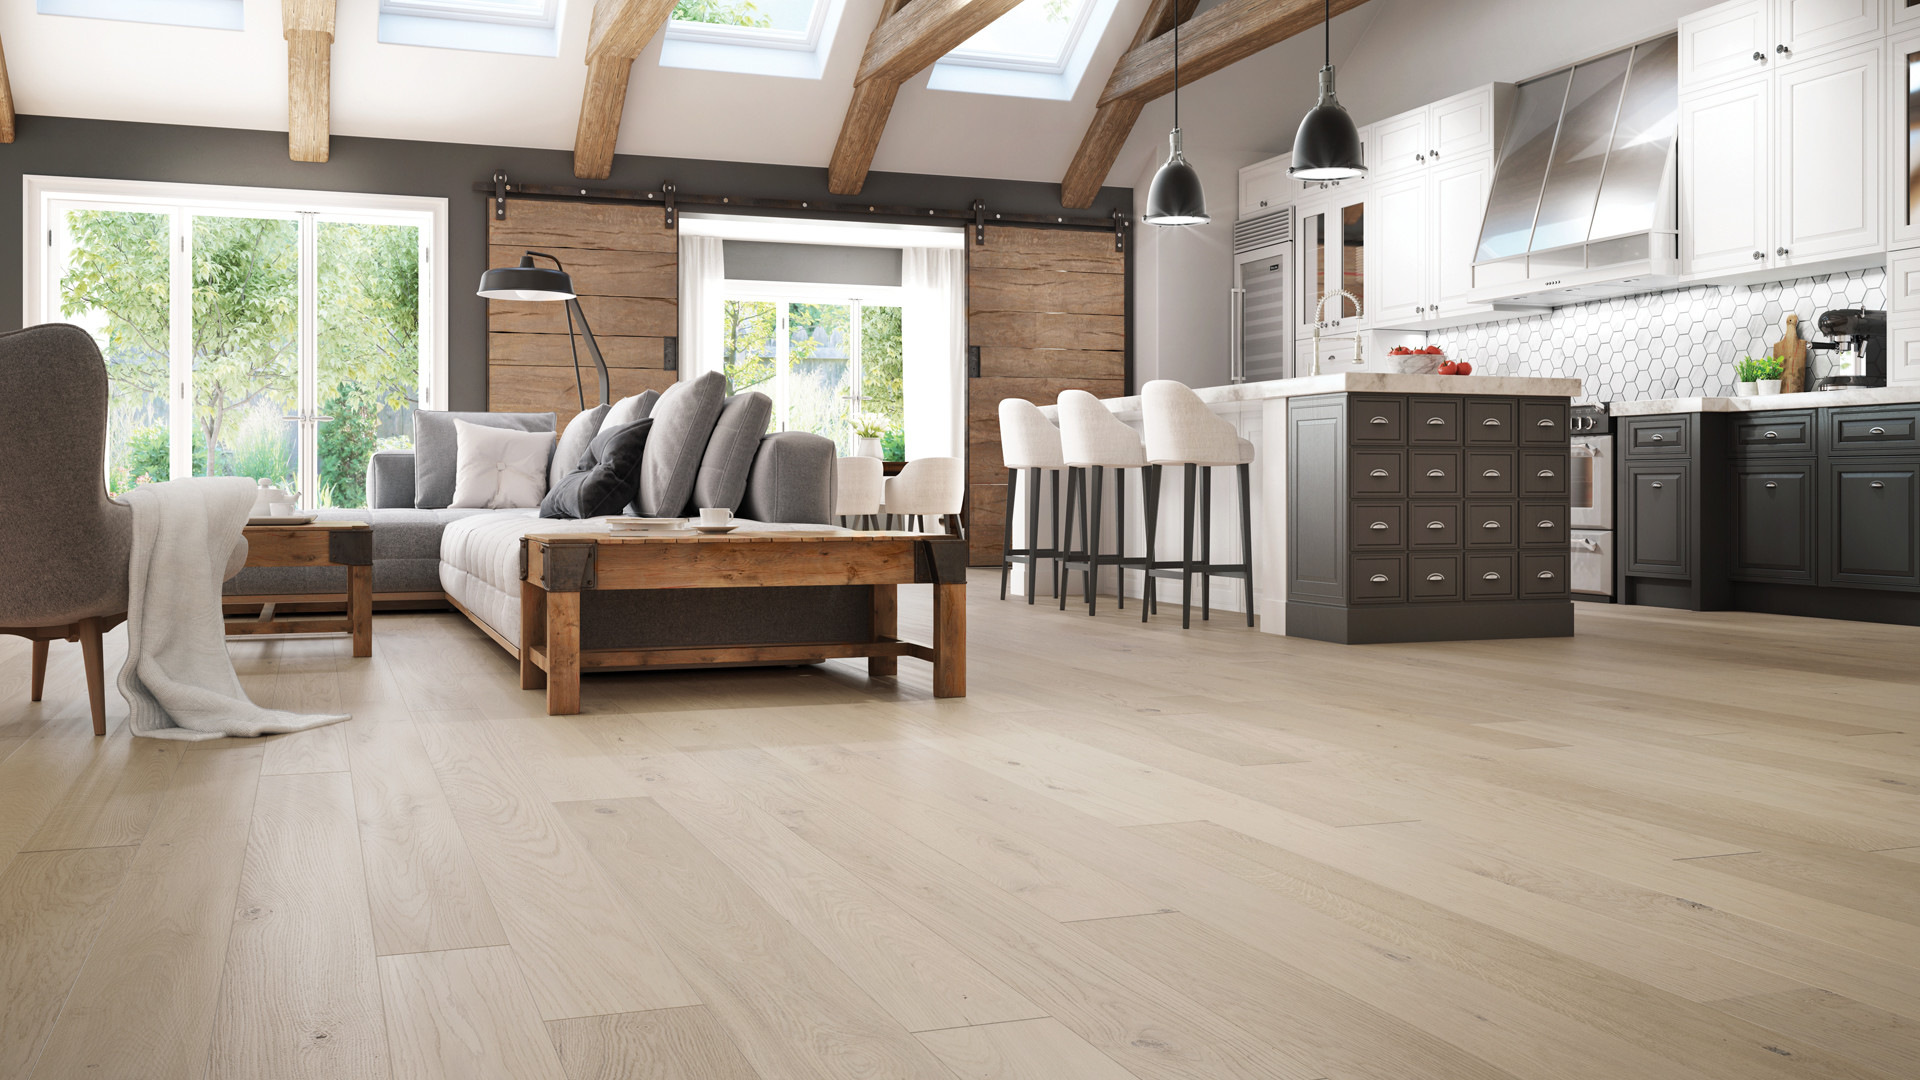 white oak hardwood flooring prices of 4 latest hardwood flooring trends of 2018 lauzon flooring within this technology brings your hardwood floors and well being to a new level by improving indoor air quality by up to 85 and decomposing up to 99 6 of